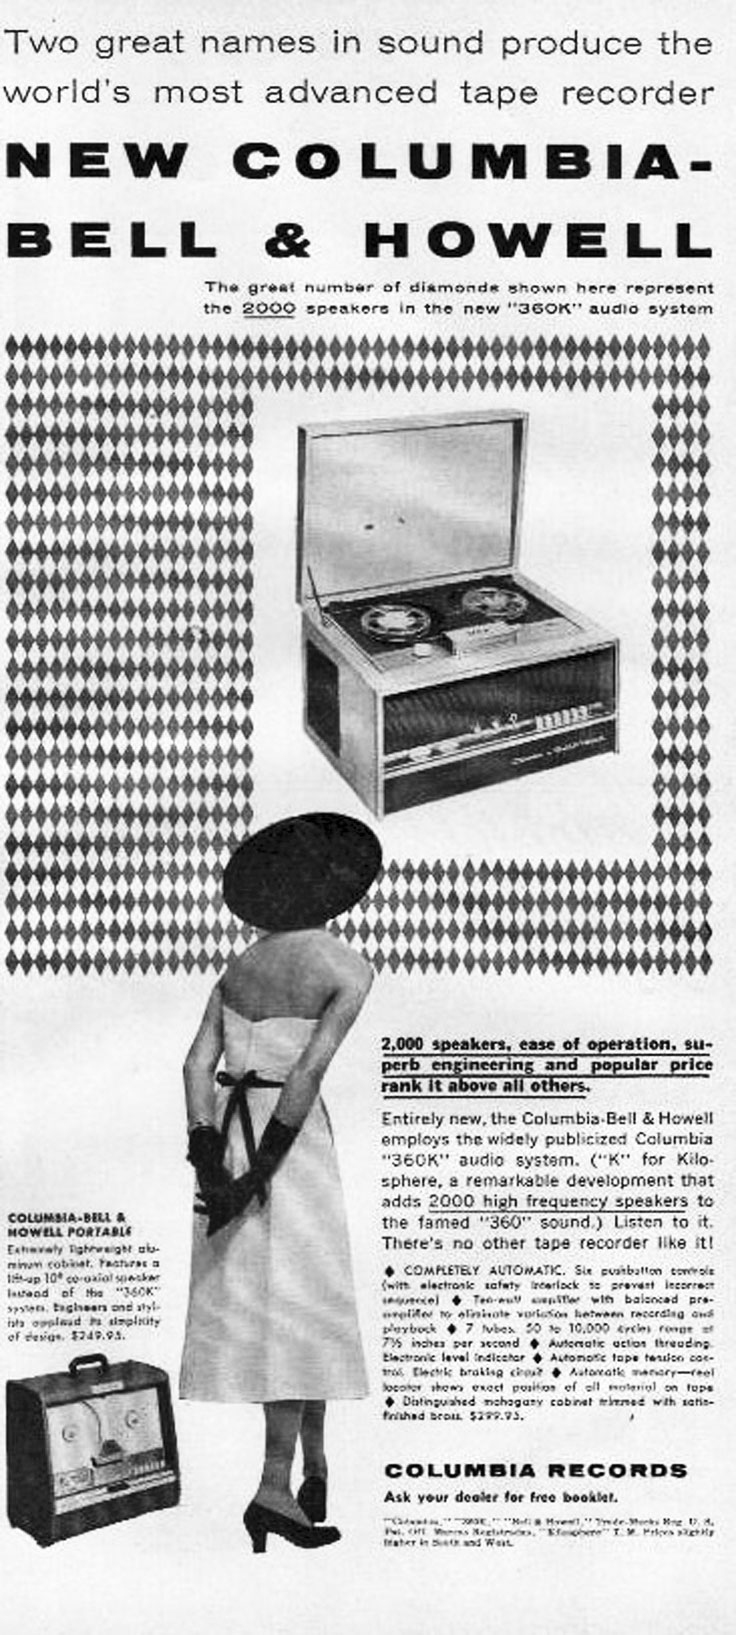 1954 Bell & Howell reel to reel tape recorder ad in the Museum of Magnetic Sound Recording / Reel2ReelTexas.com vintage recording collection